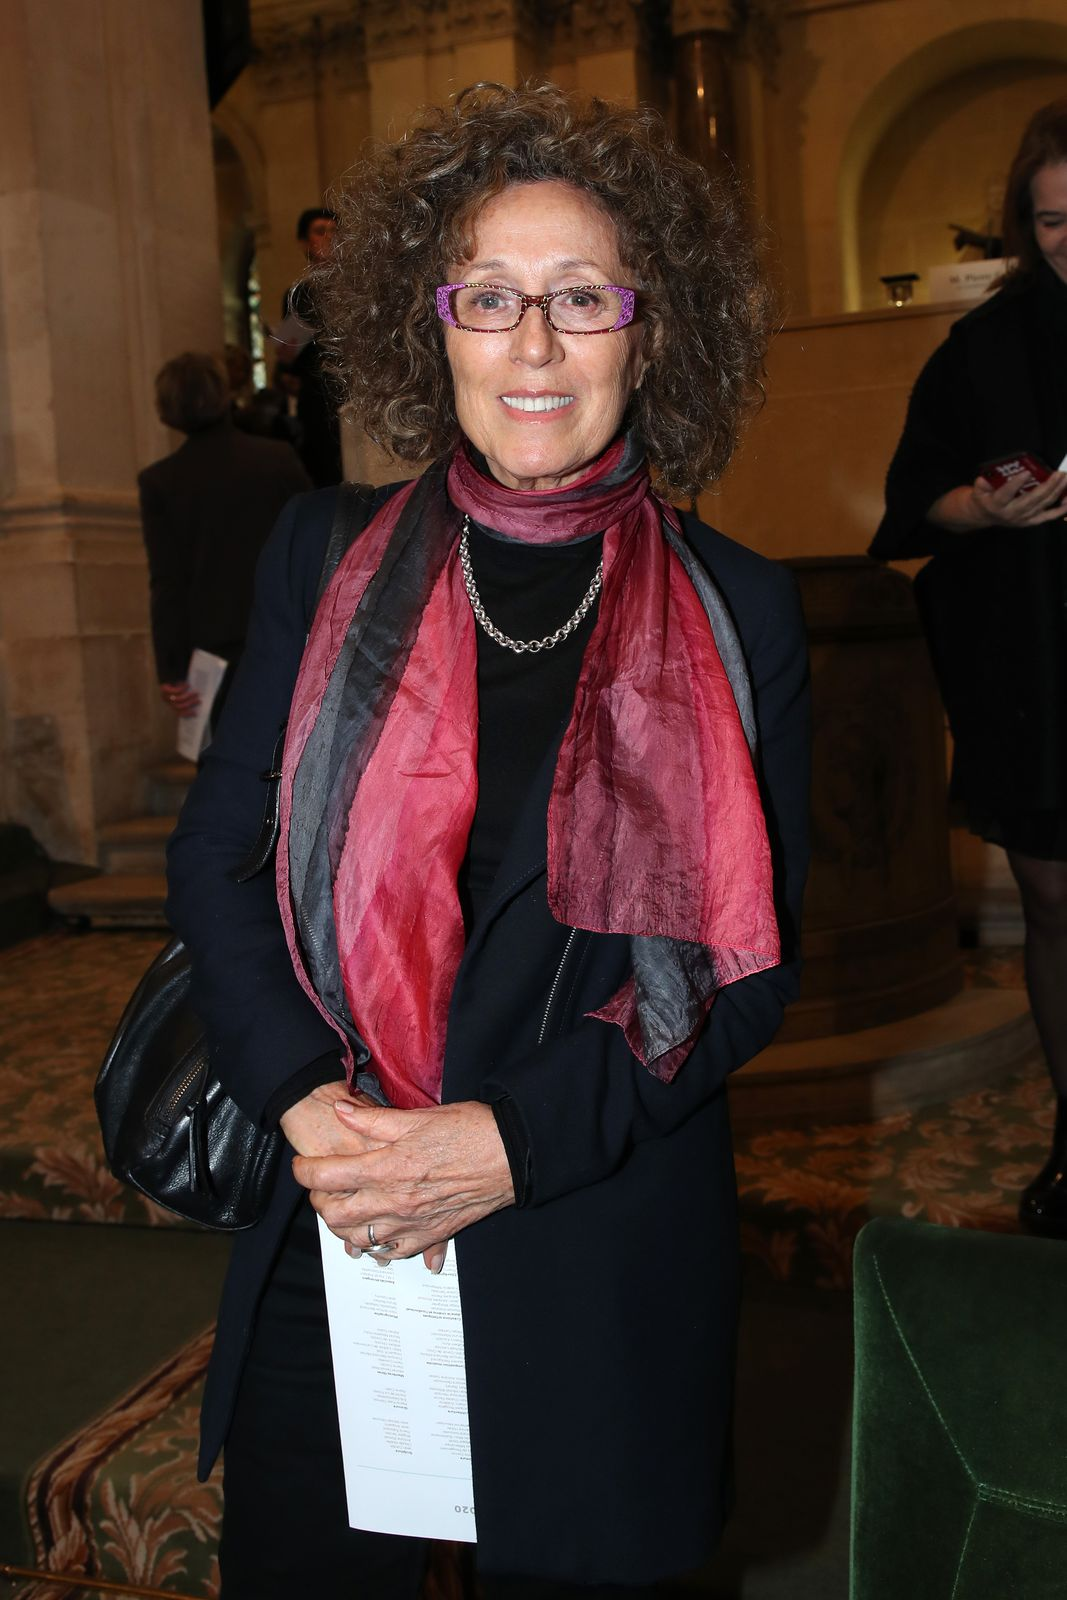 La journaliste Mireille Dumas | Photo : Getty Images